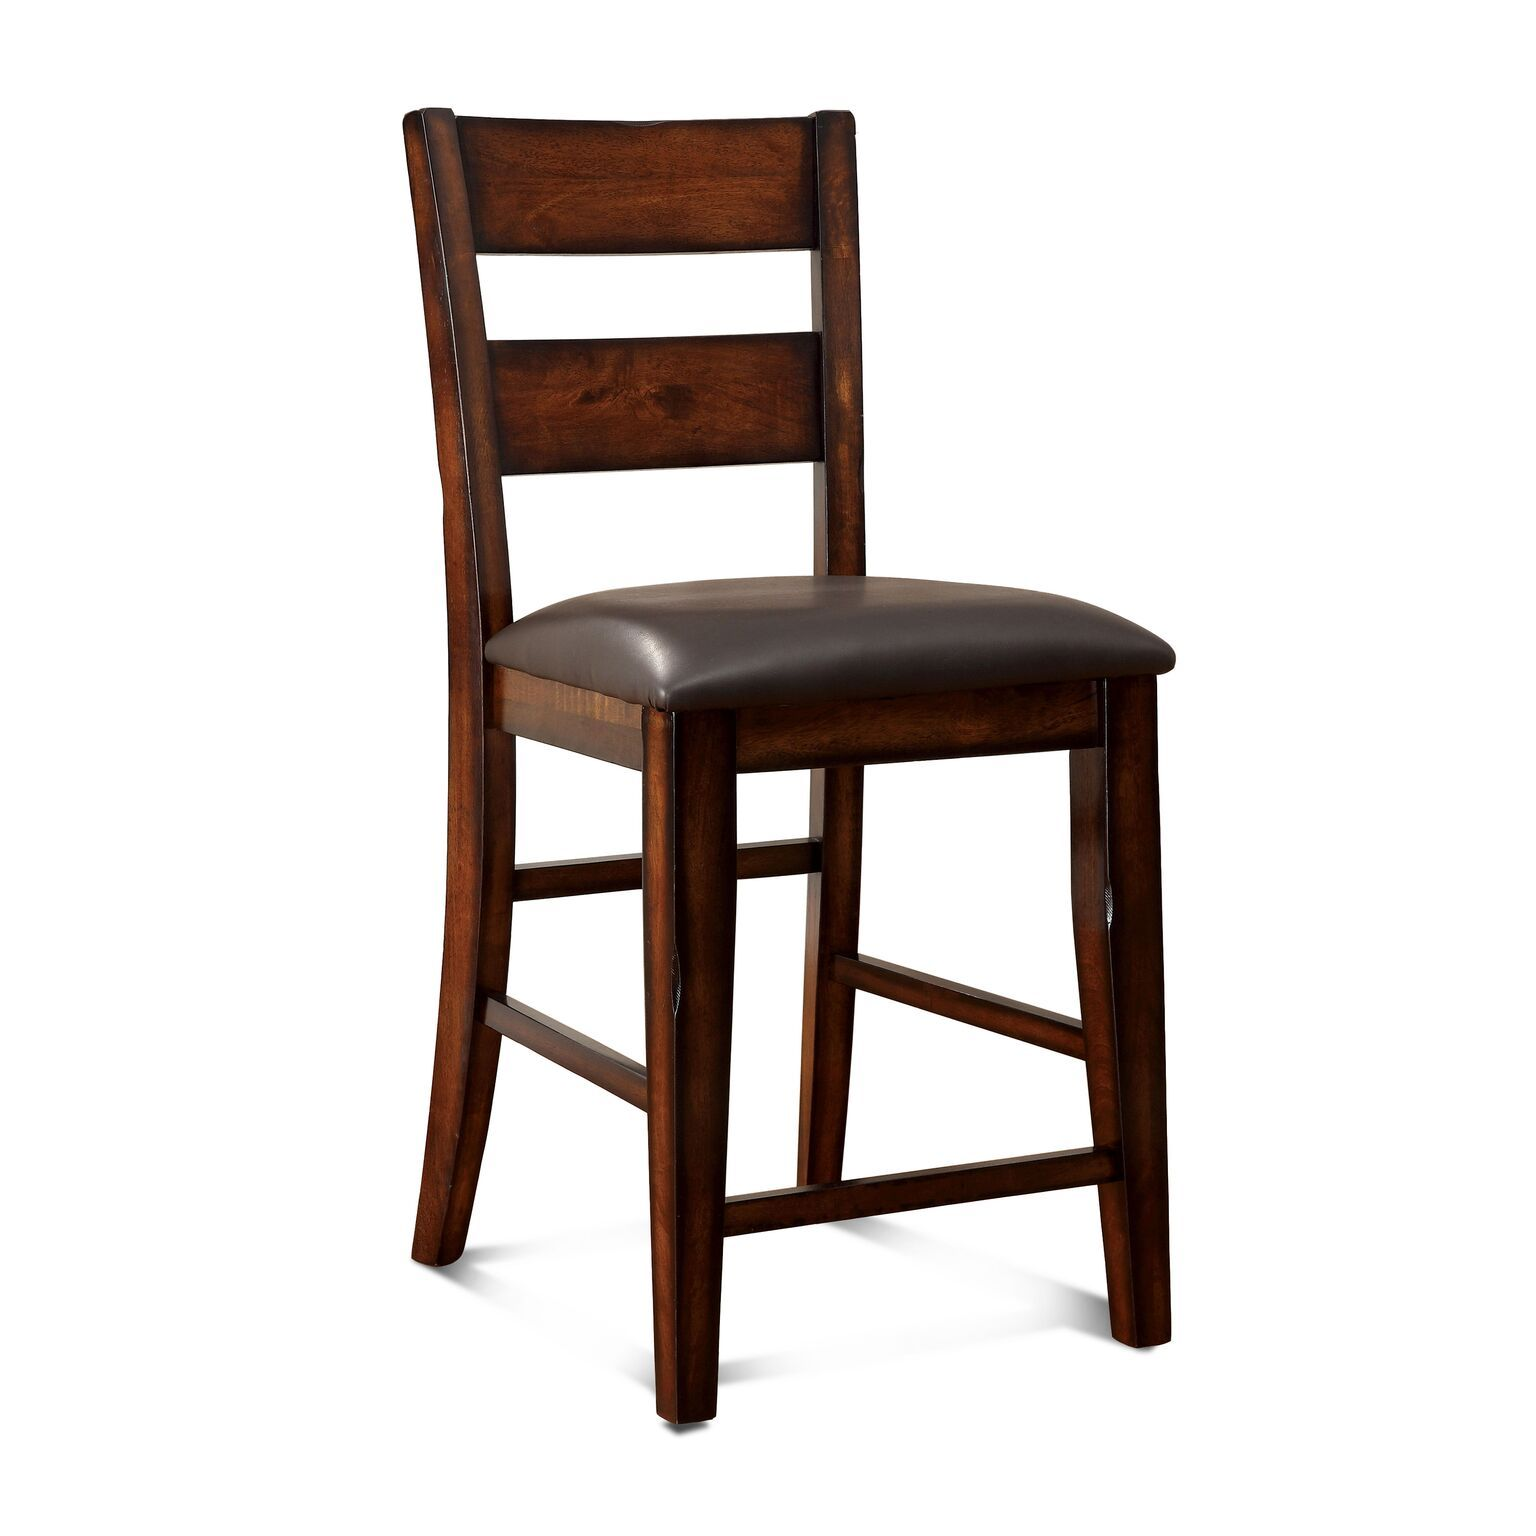 Ohare Leatherette Dining Chair Dark Cherry (Set of 2) Furniture Enitial Lab